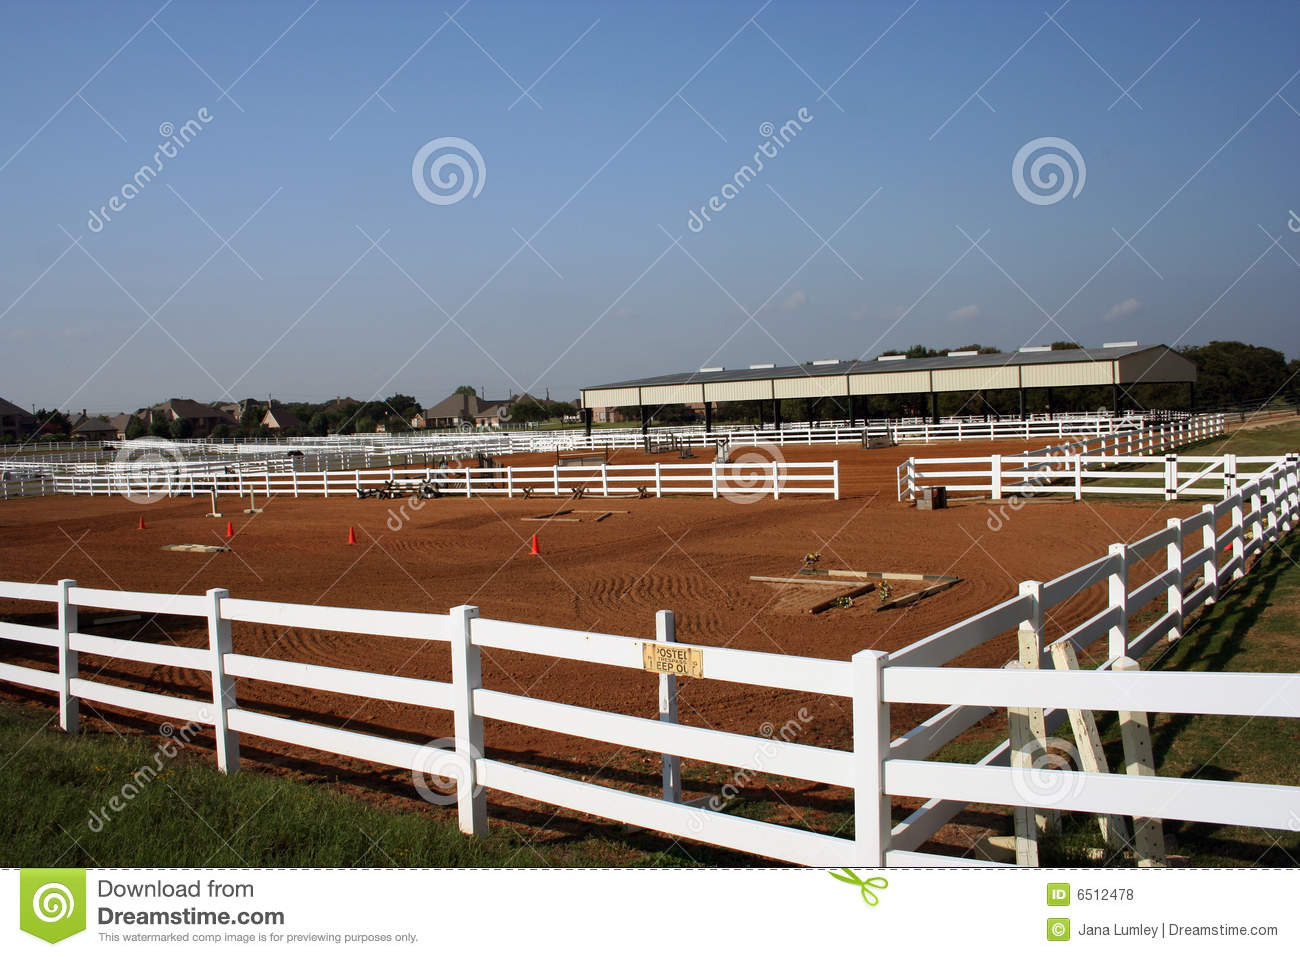 How to Write a Business Plan for an Equine Facility